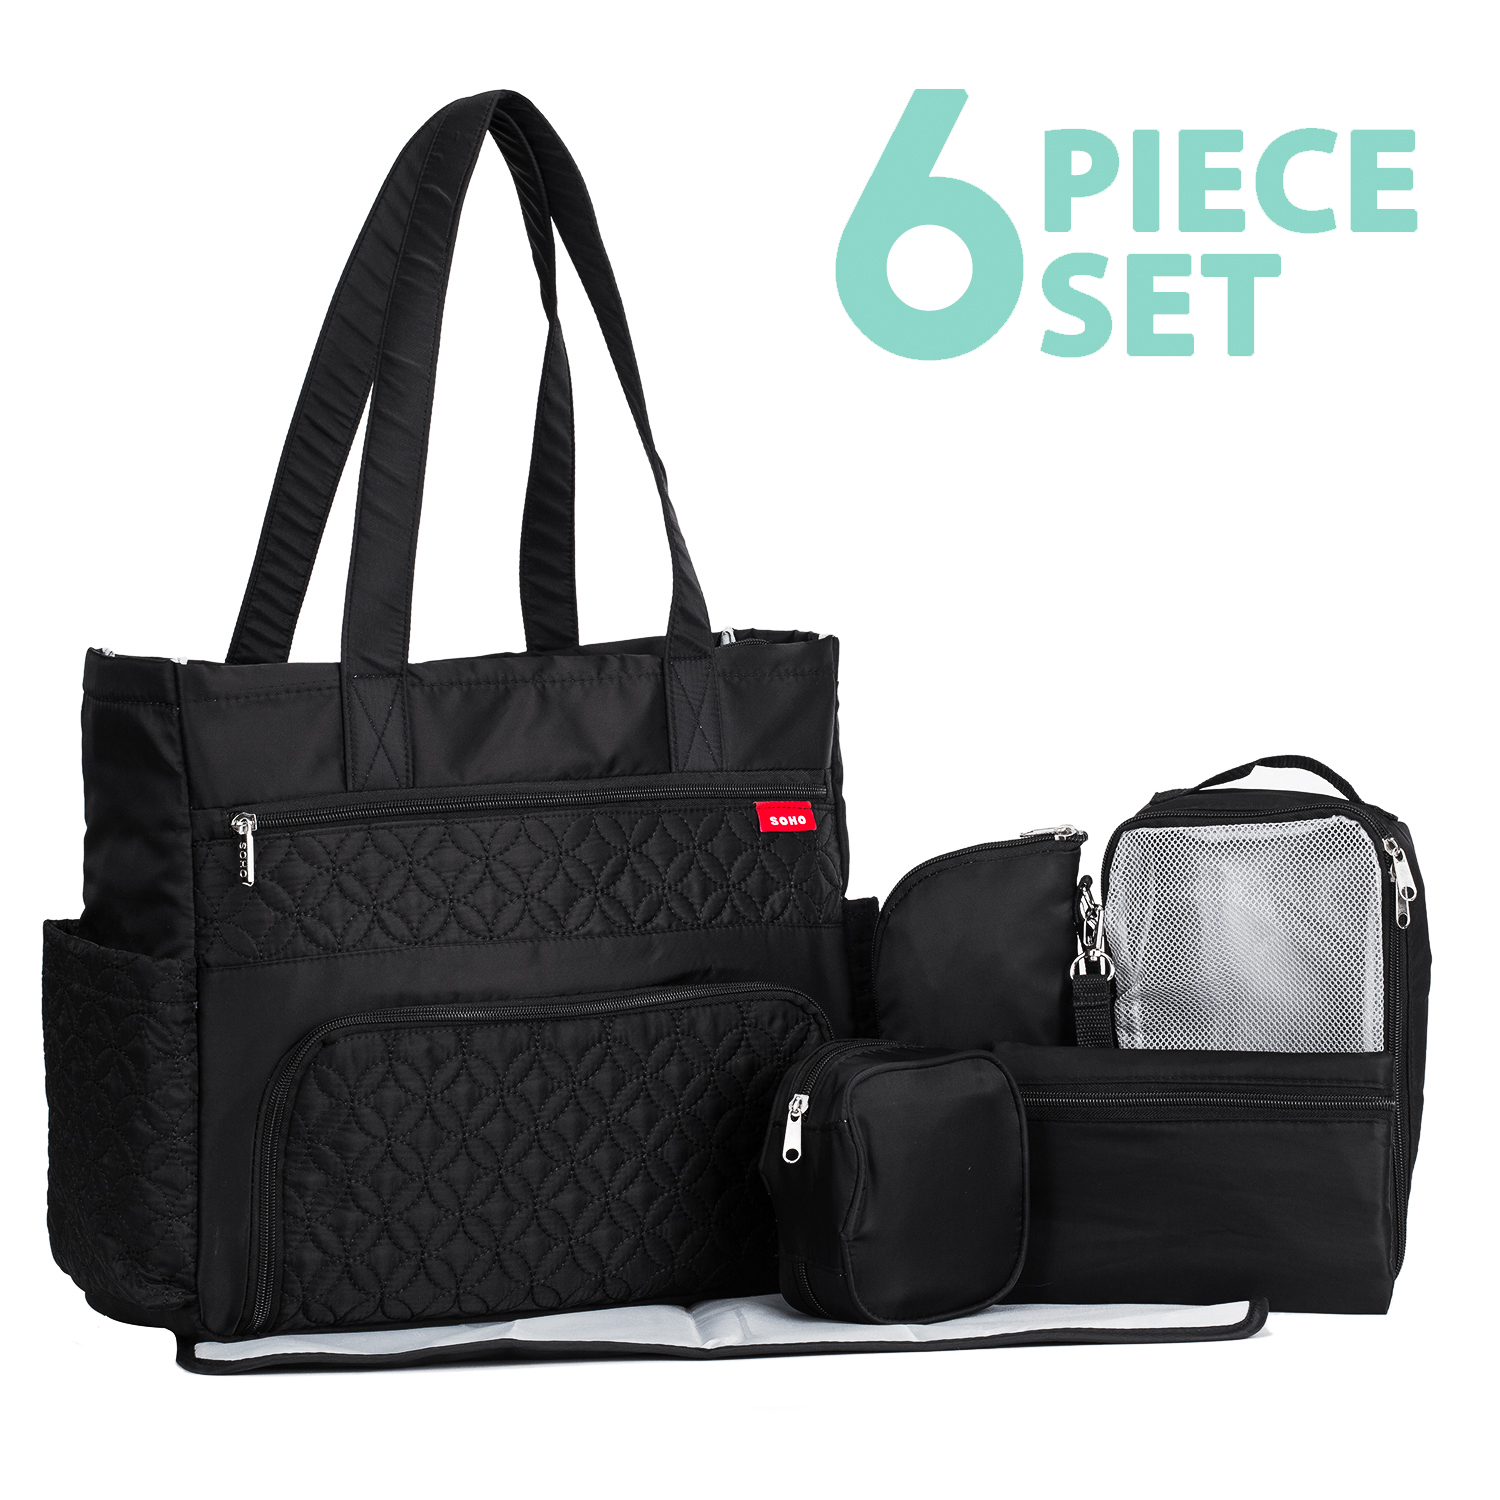 Williamsburg 6 pieces Diaper Tote Bag set * Limited Tme Offer! *